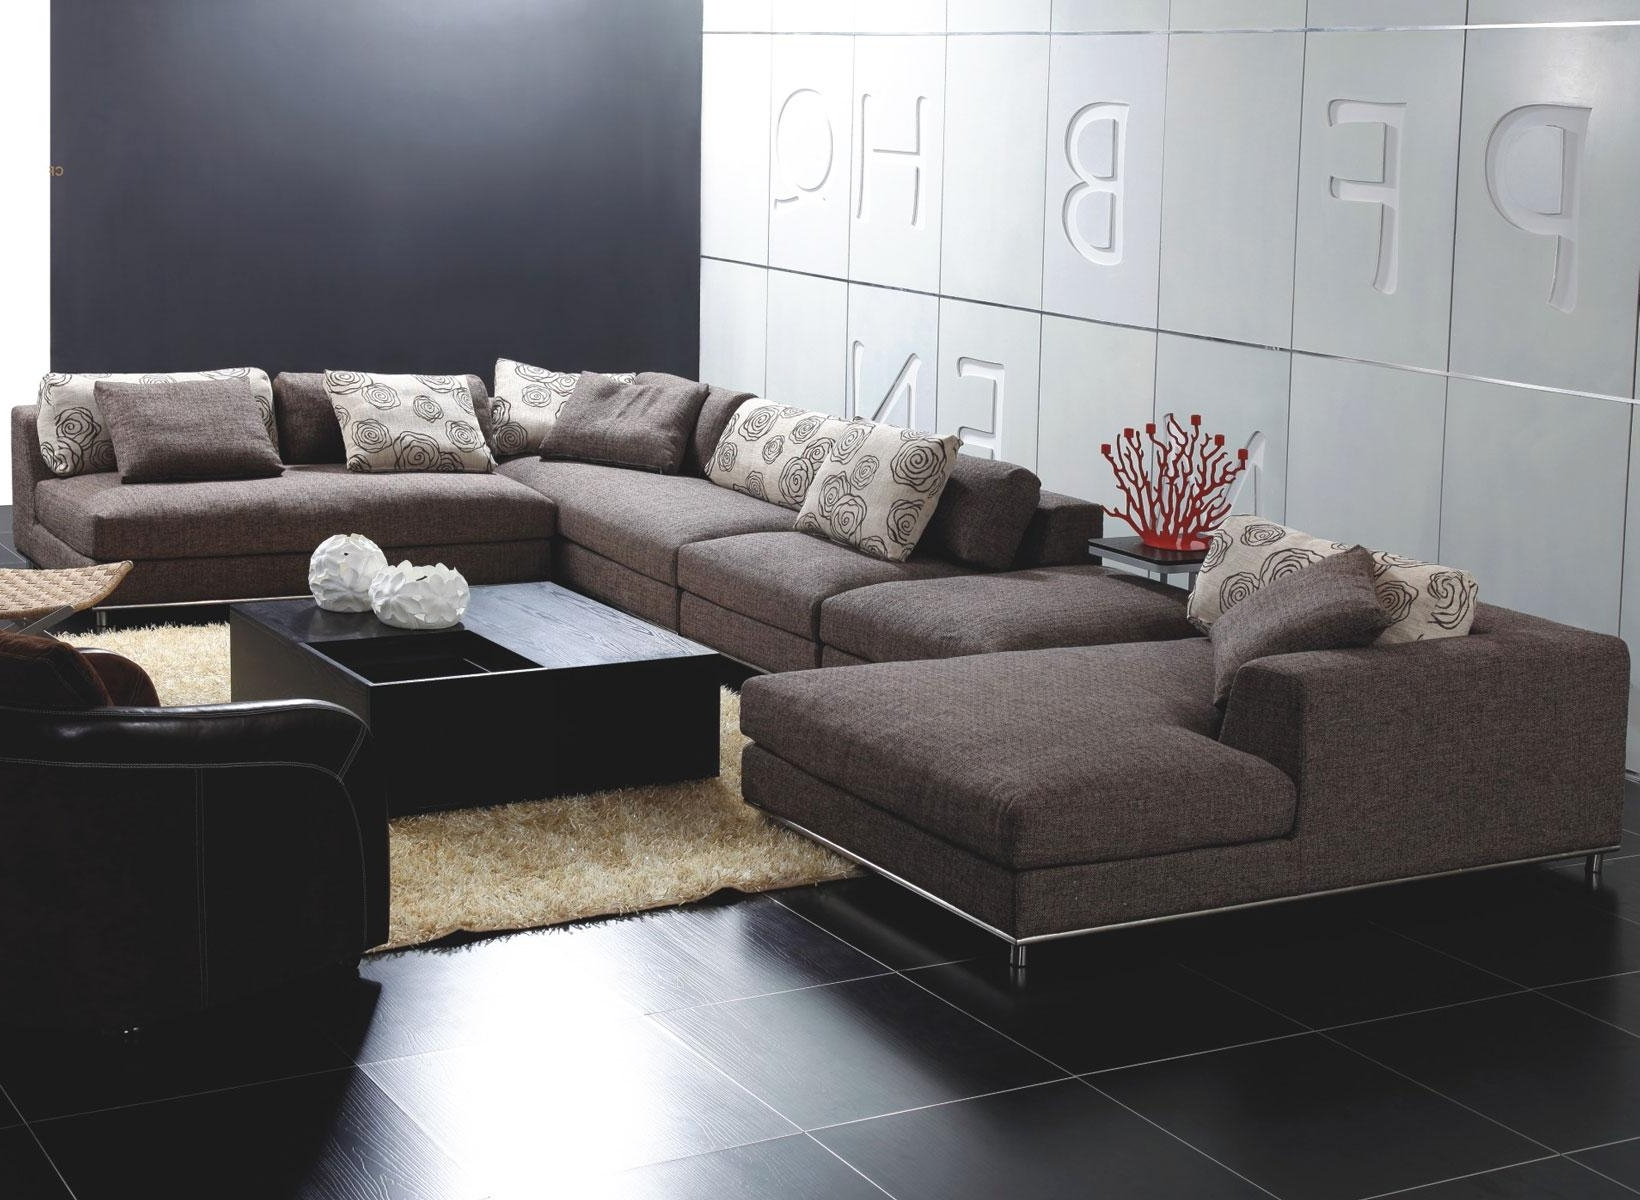 Cheap Used Sectional Sofas – Hotelsbacau Regarding 2019 Used Sectional Sofas (View 16 of 20)